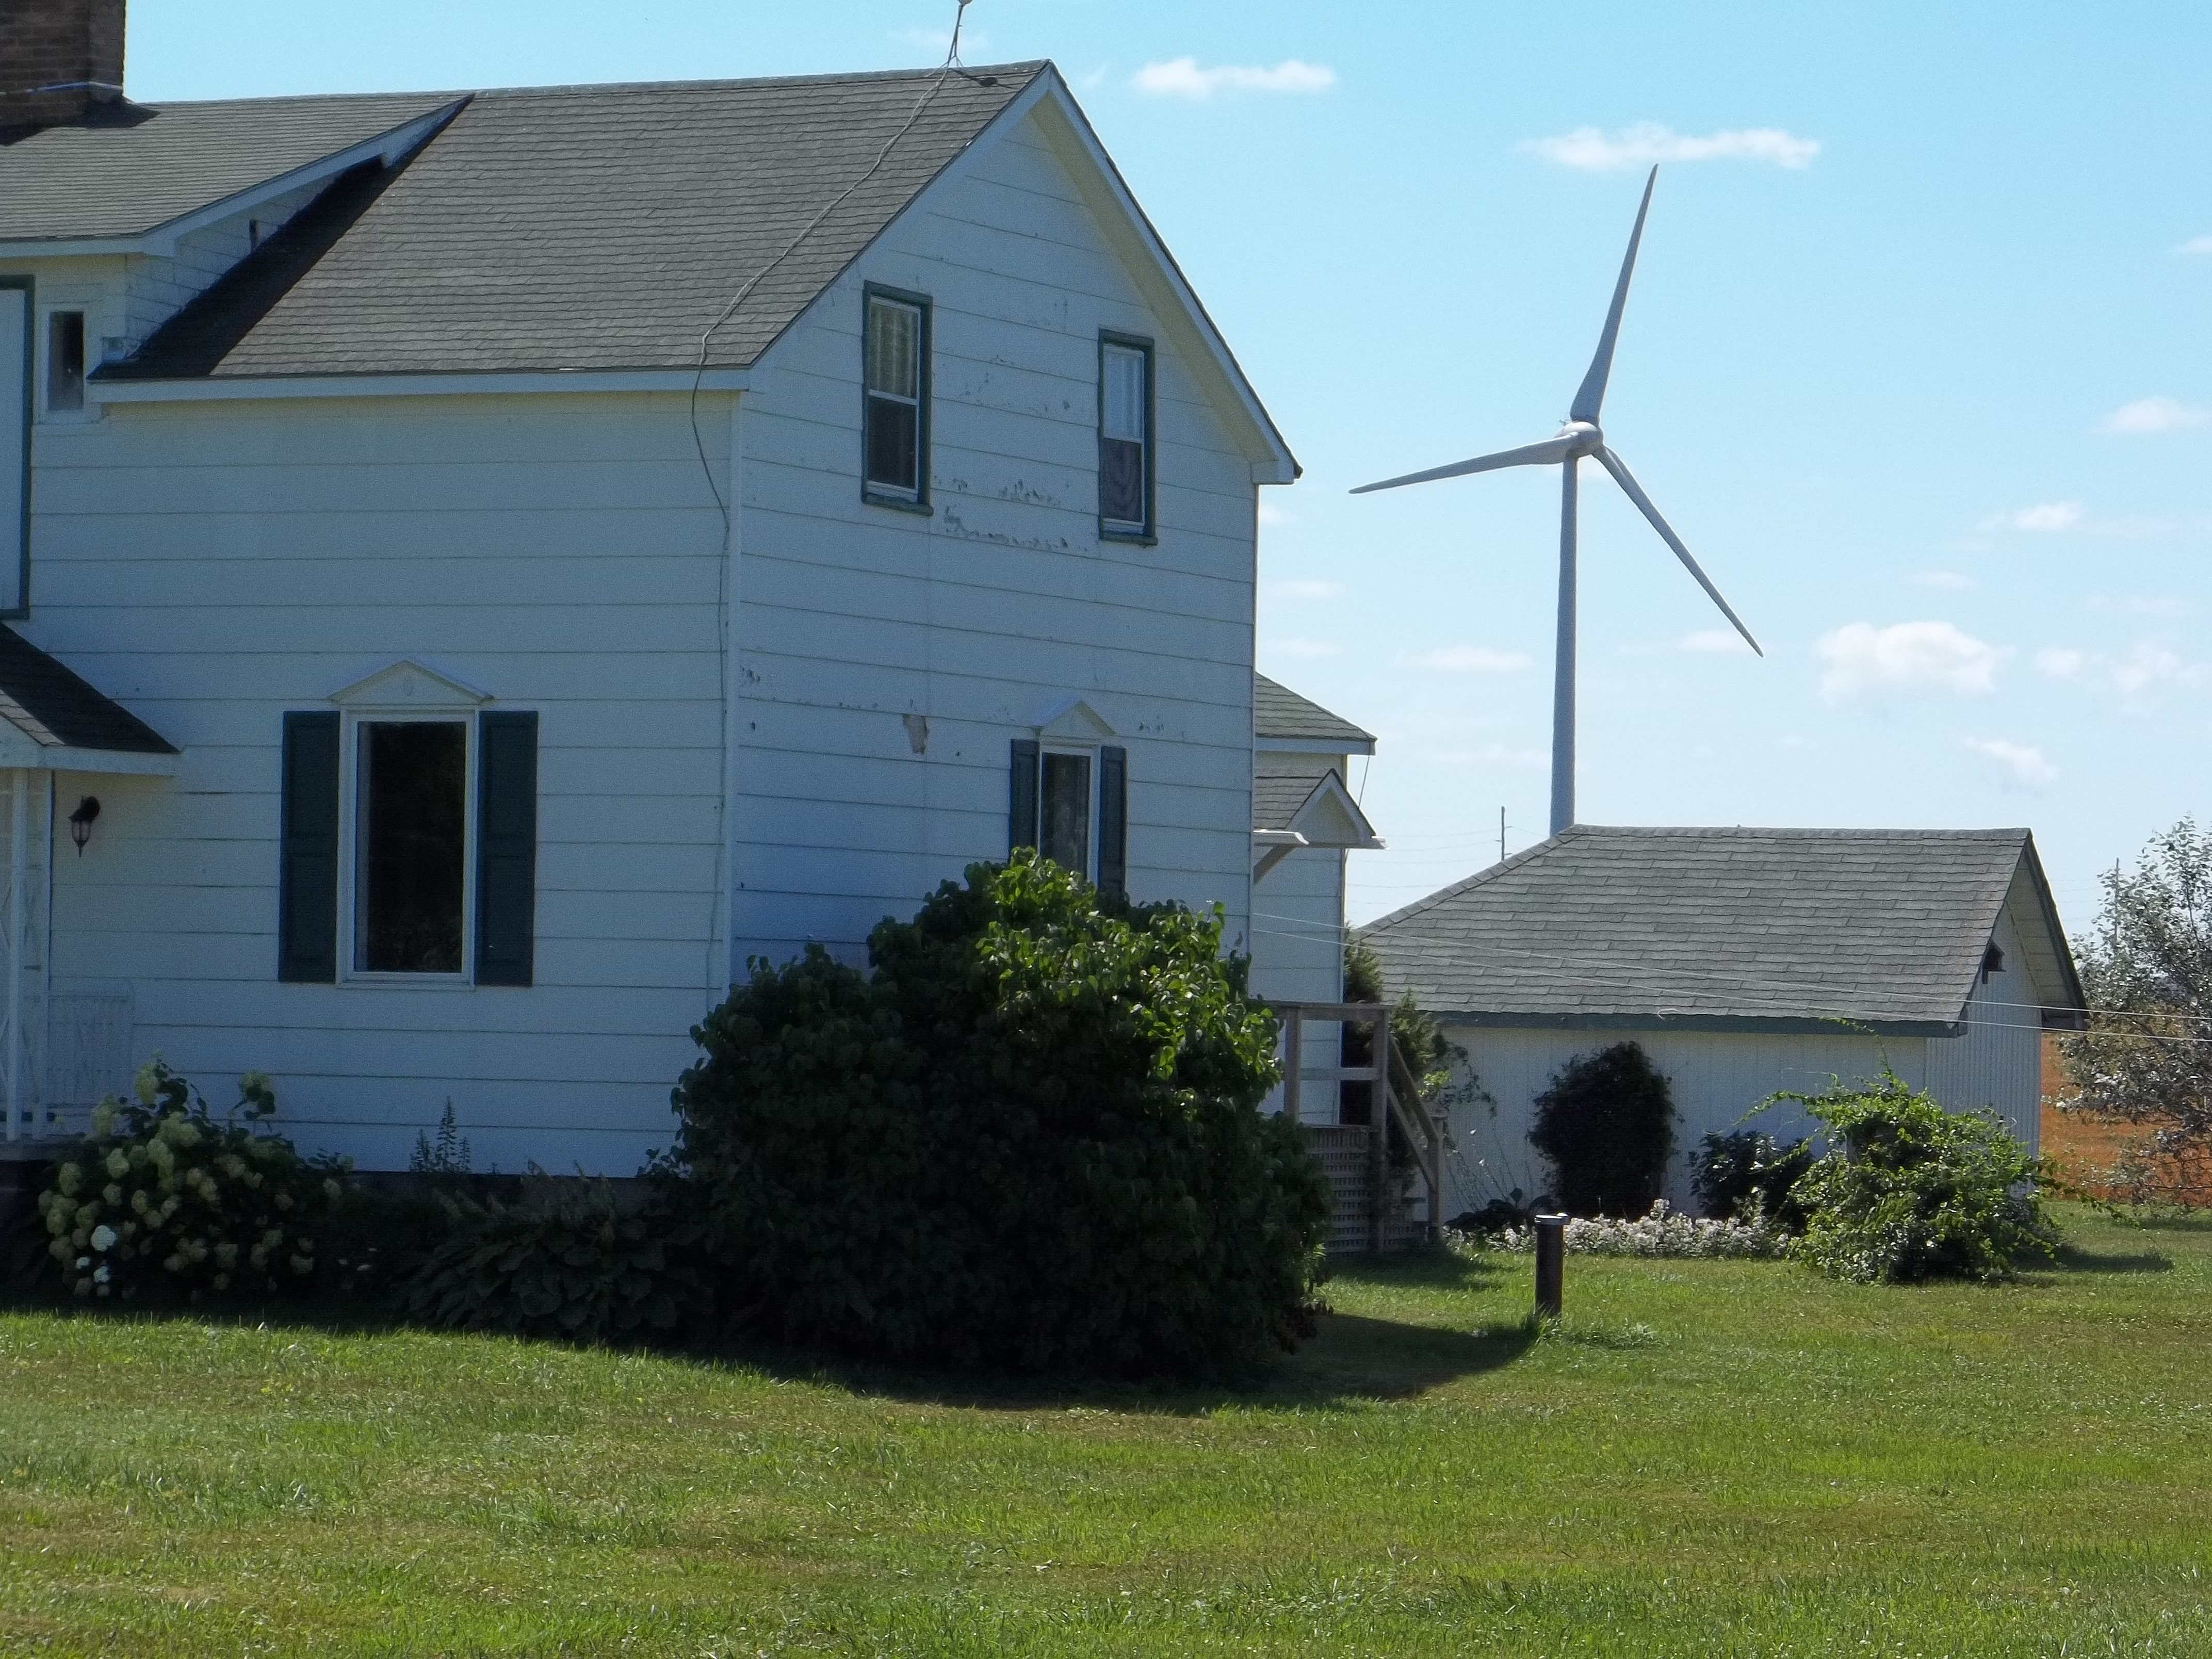 The problems with wind turbine noise are worldwide, and need worldwide regulation